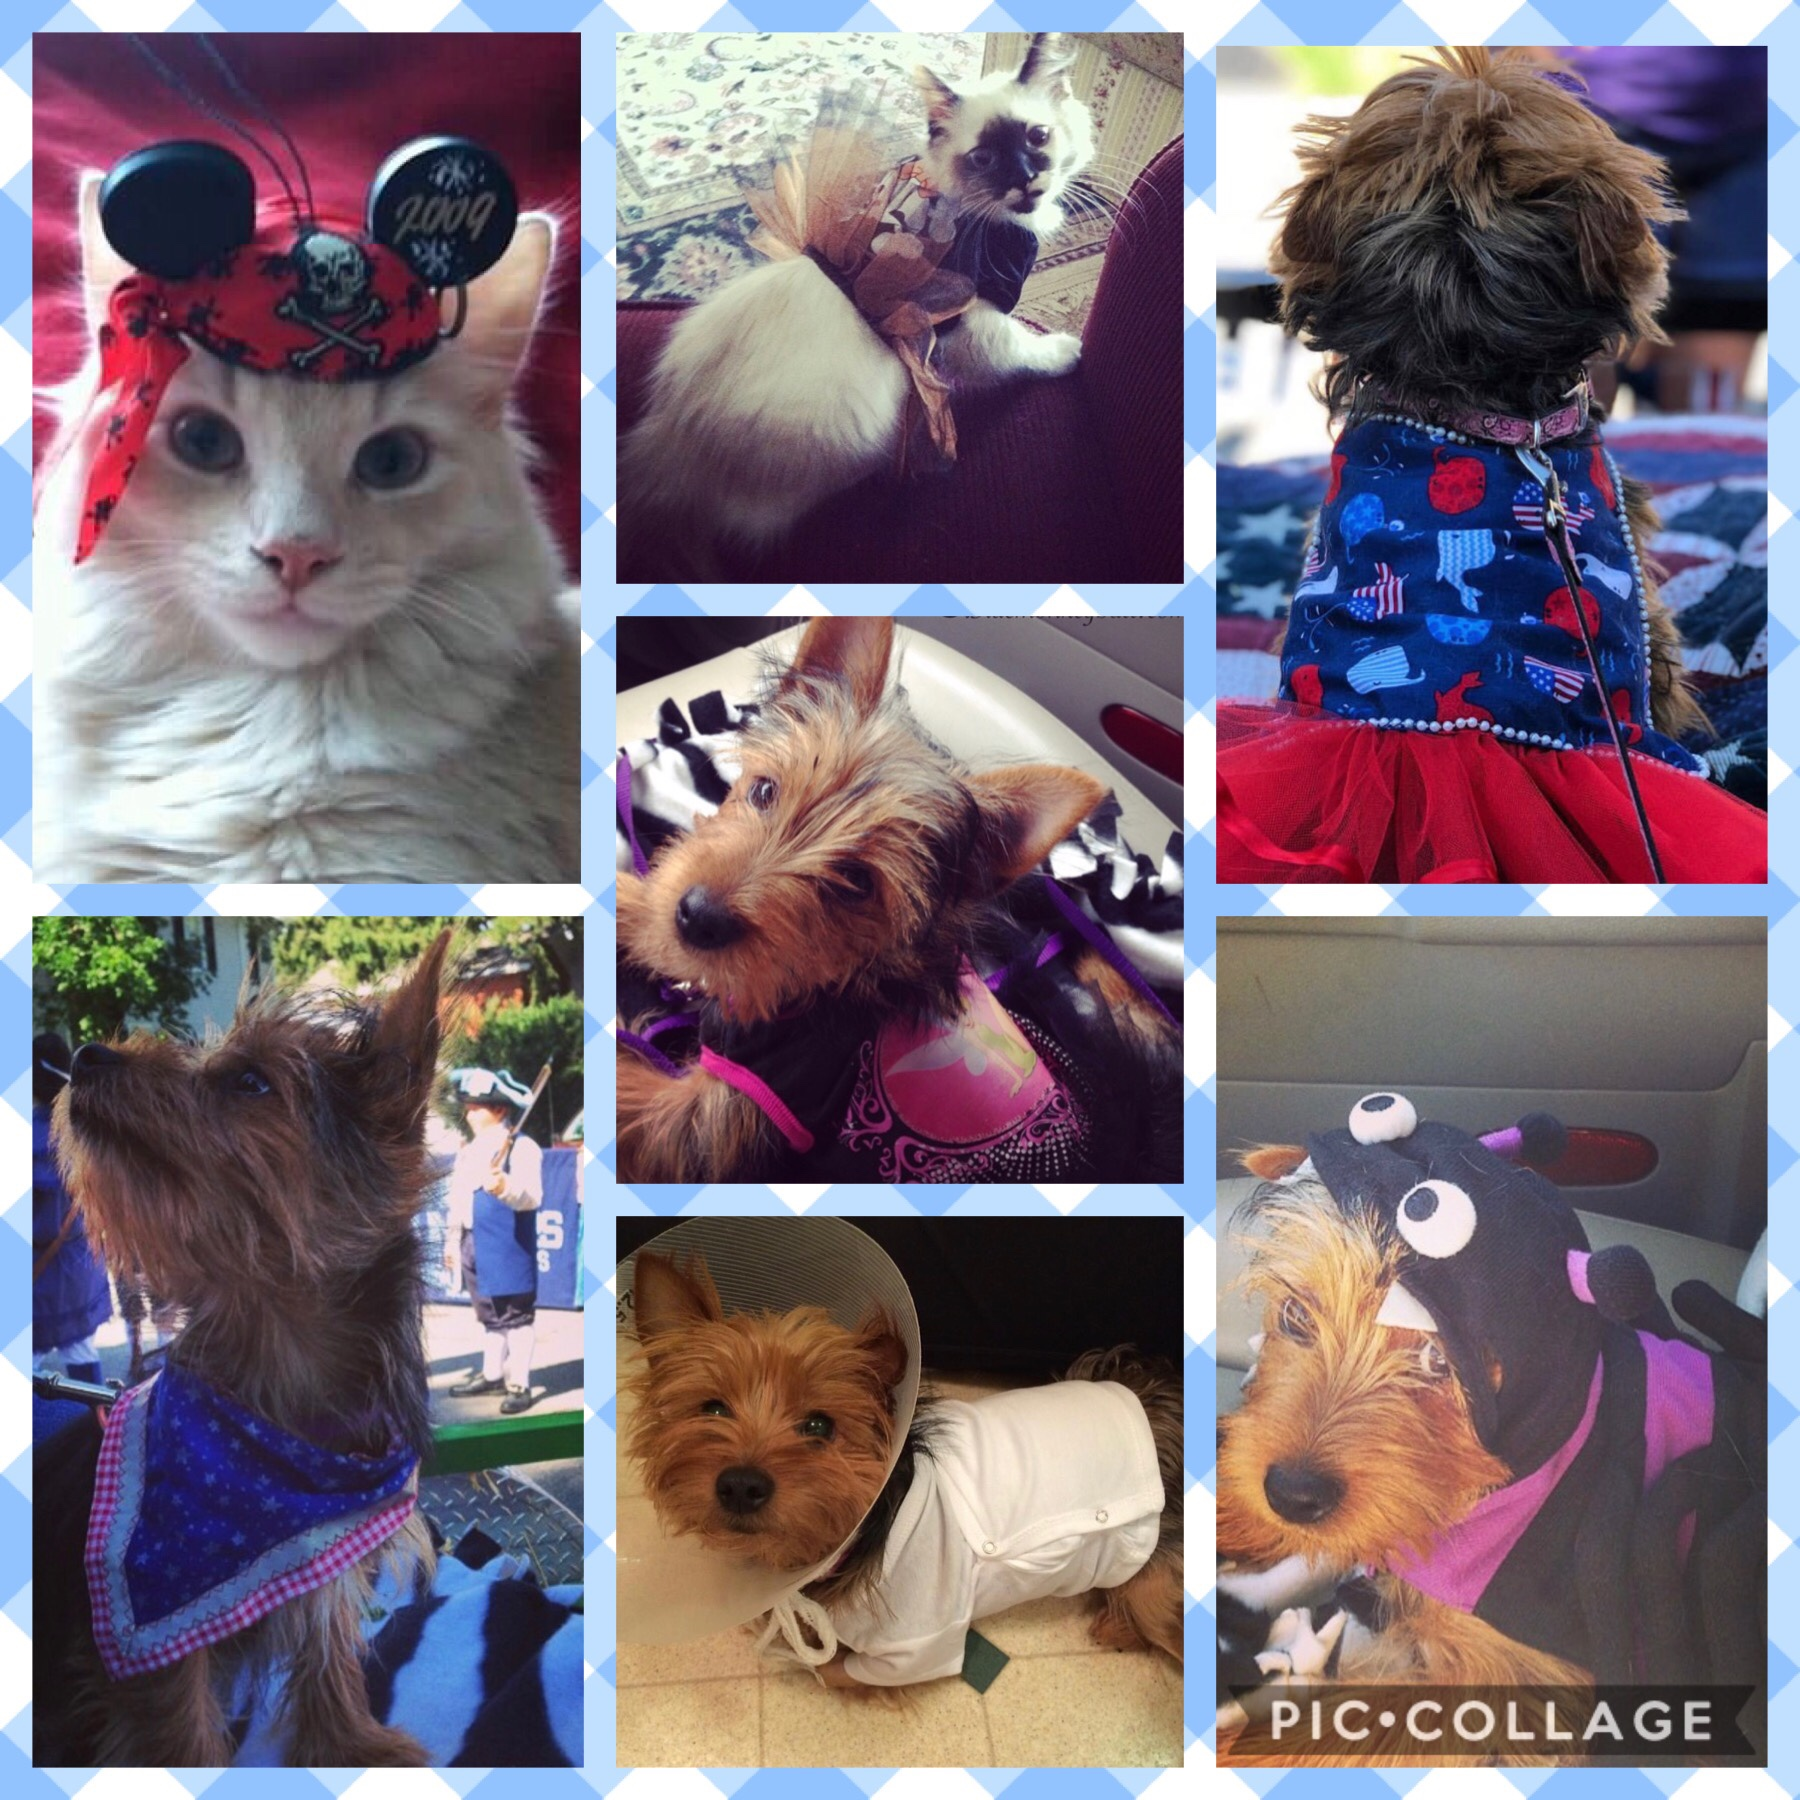 National dress up your pet day collage of a yorkie and two cats wearing hats and costumes